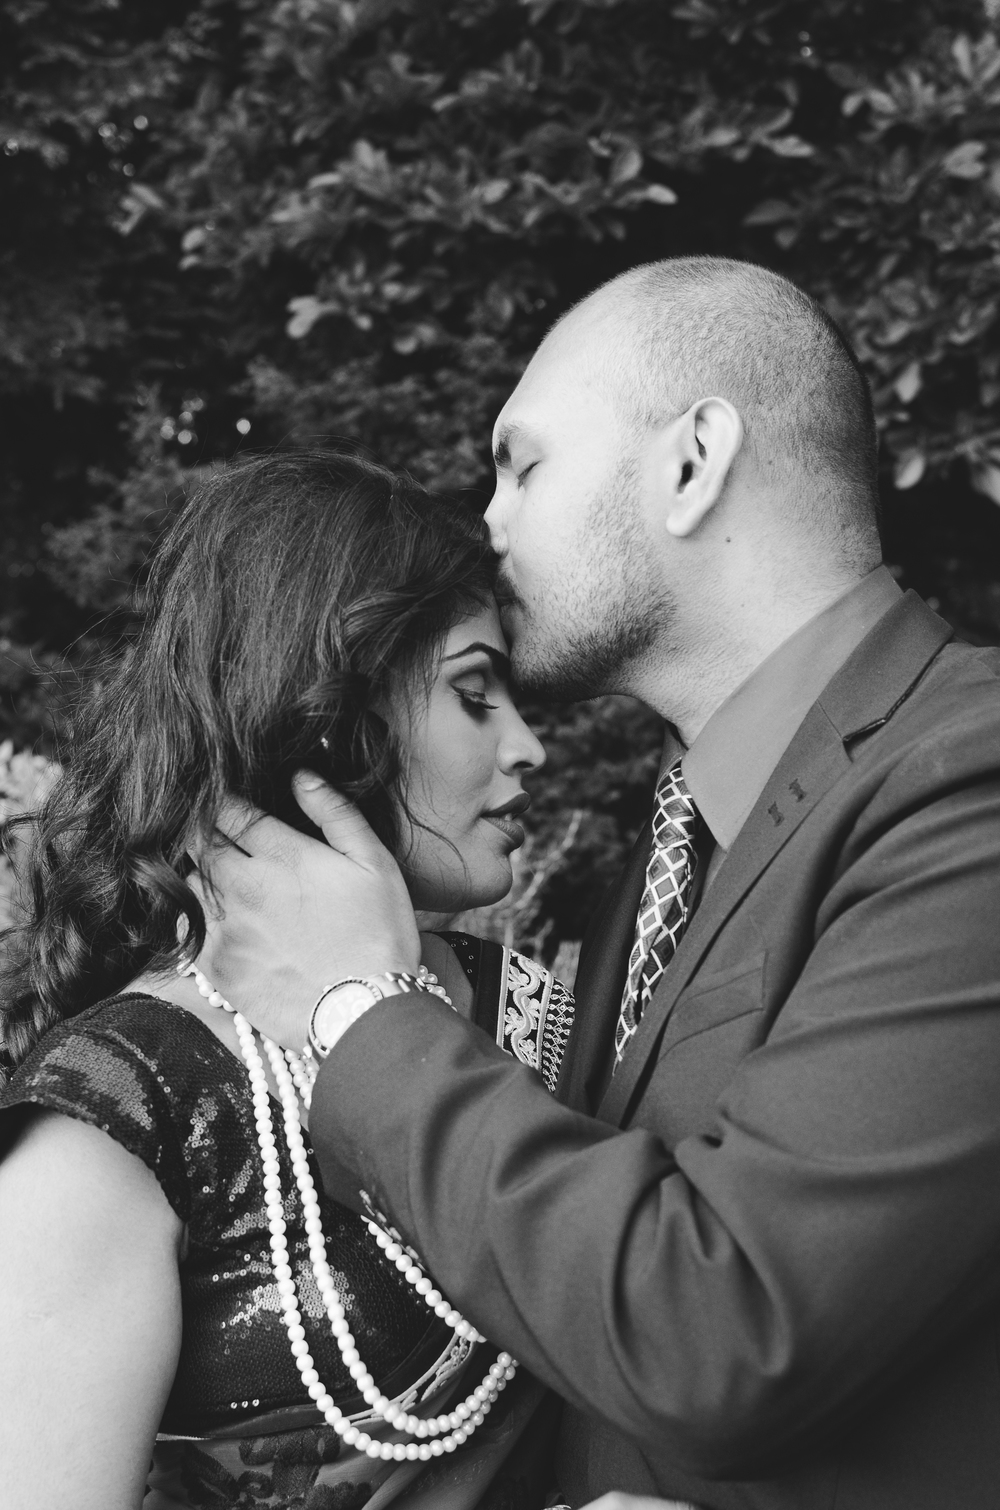 Amresh + Salona Katie Powell Photography Vancouver Engagement Stanley Park Portraits-4.jpg